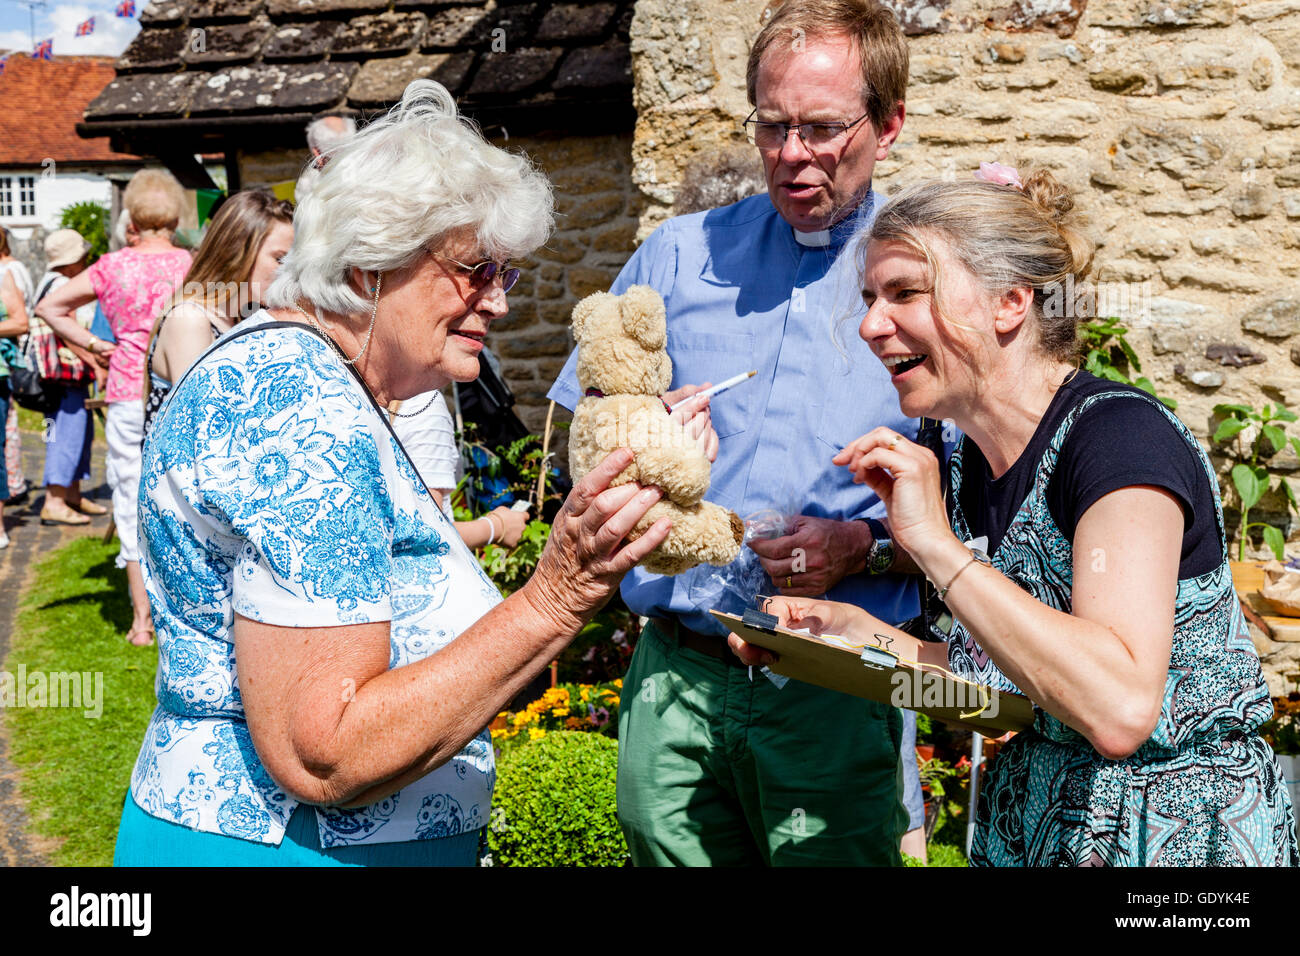 An Elderly Woman Enters A Teddy Bear Into The Prettiest Teddy Bear Competition, West Chiltington Summer Fete, Sussex, - Stock Image